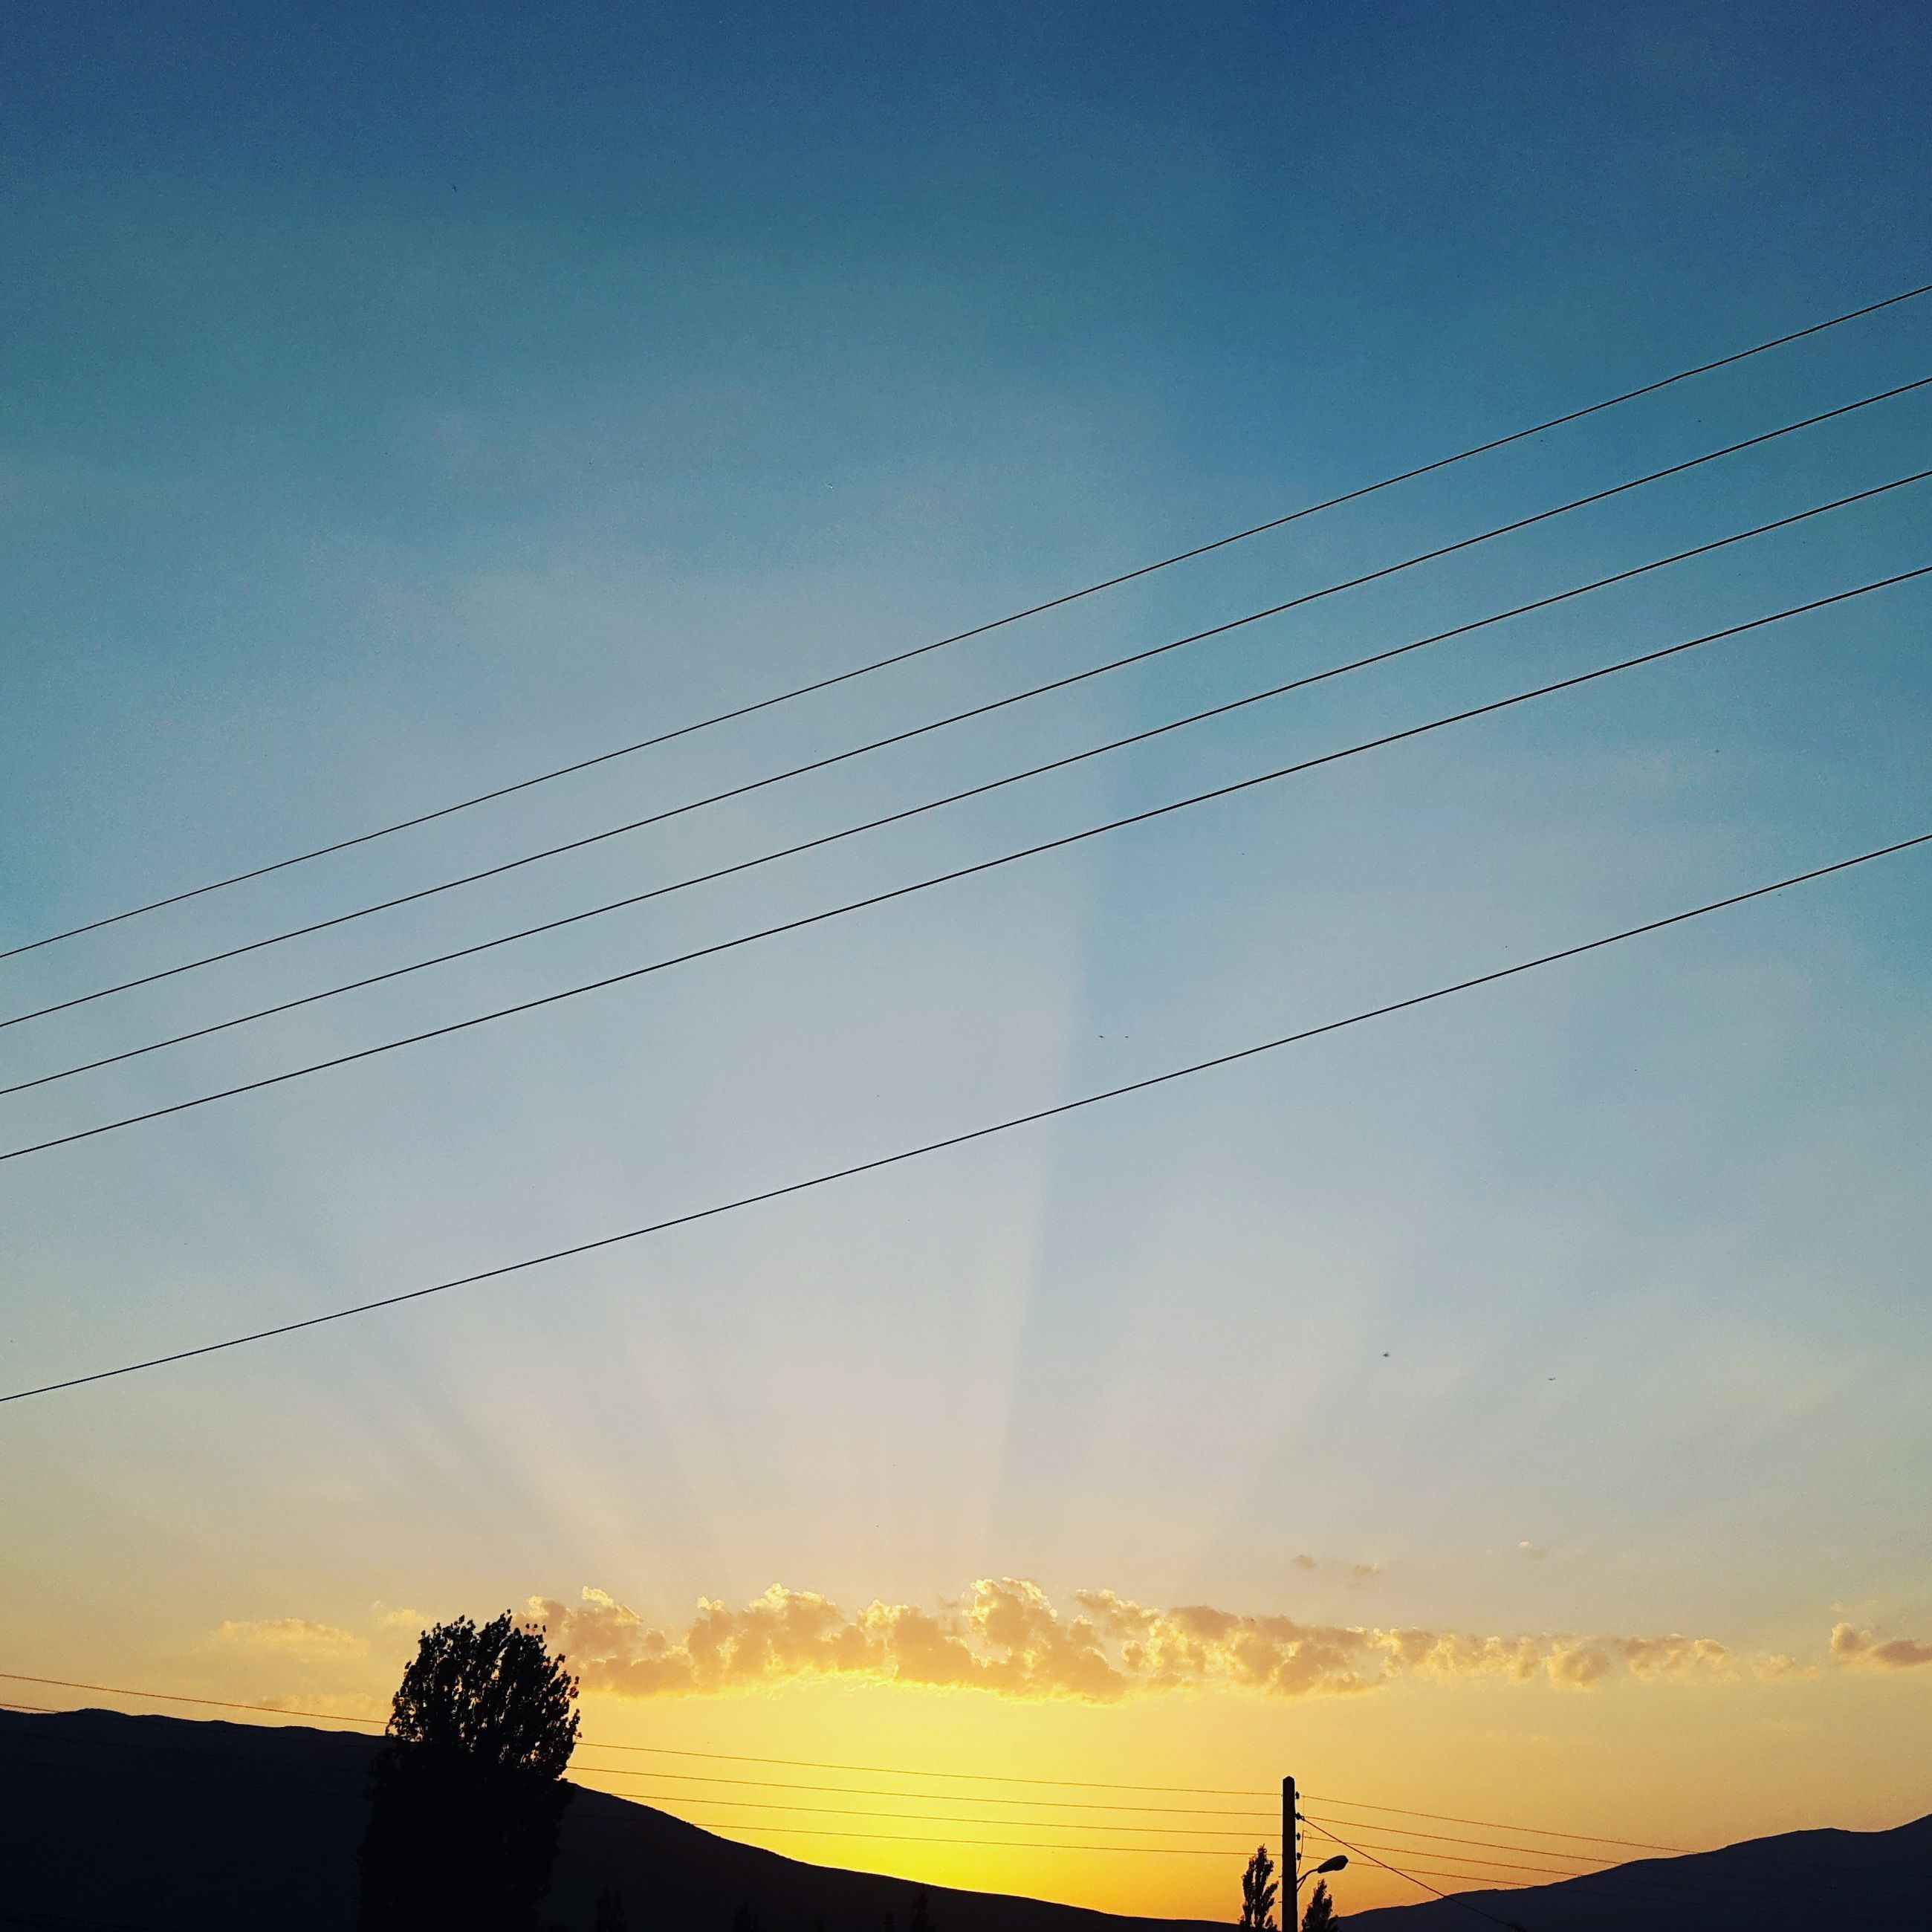 silhouette, sunset, low angle view, sky, power line, beauty in nature, nature, tranquility, scenics, tranquil scene, outdoors, cable, no people, orange color, cloud - sky, outline, cloud, blue, idyllic, high section, power supply